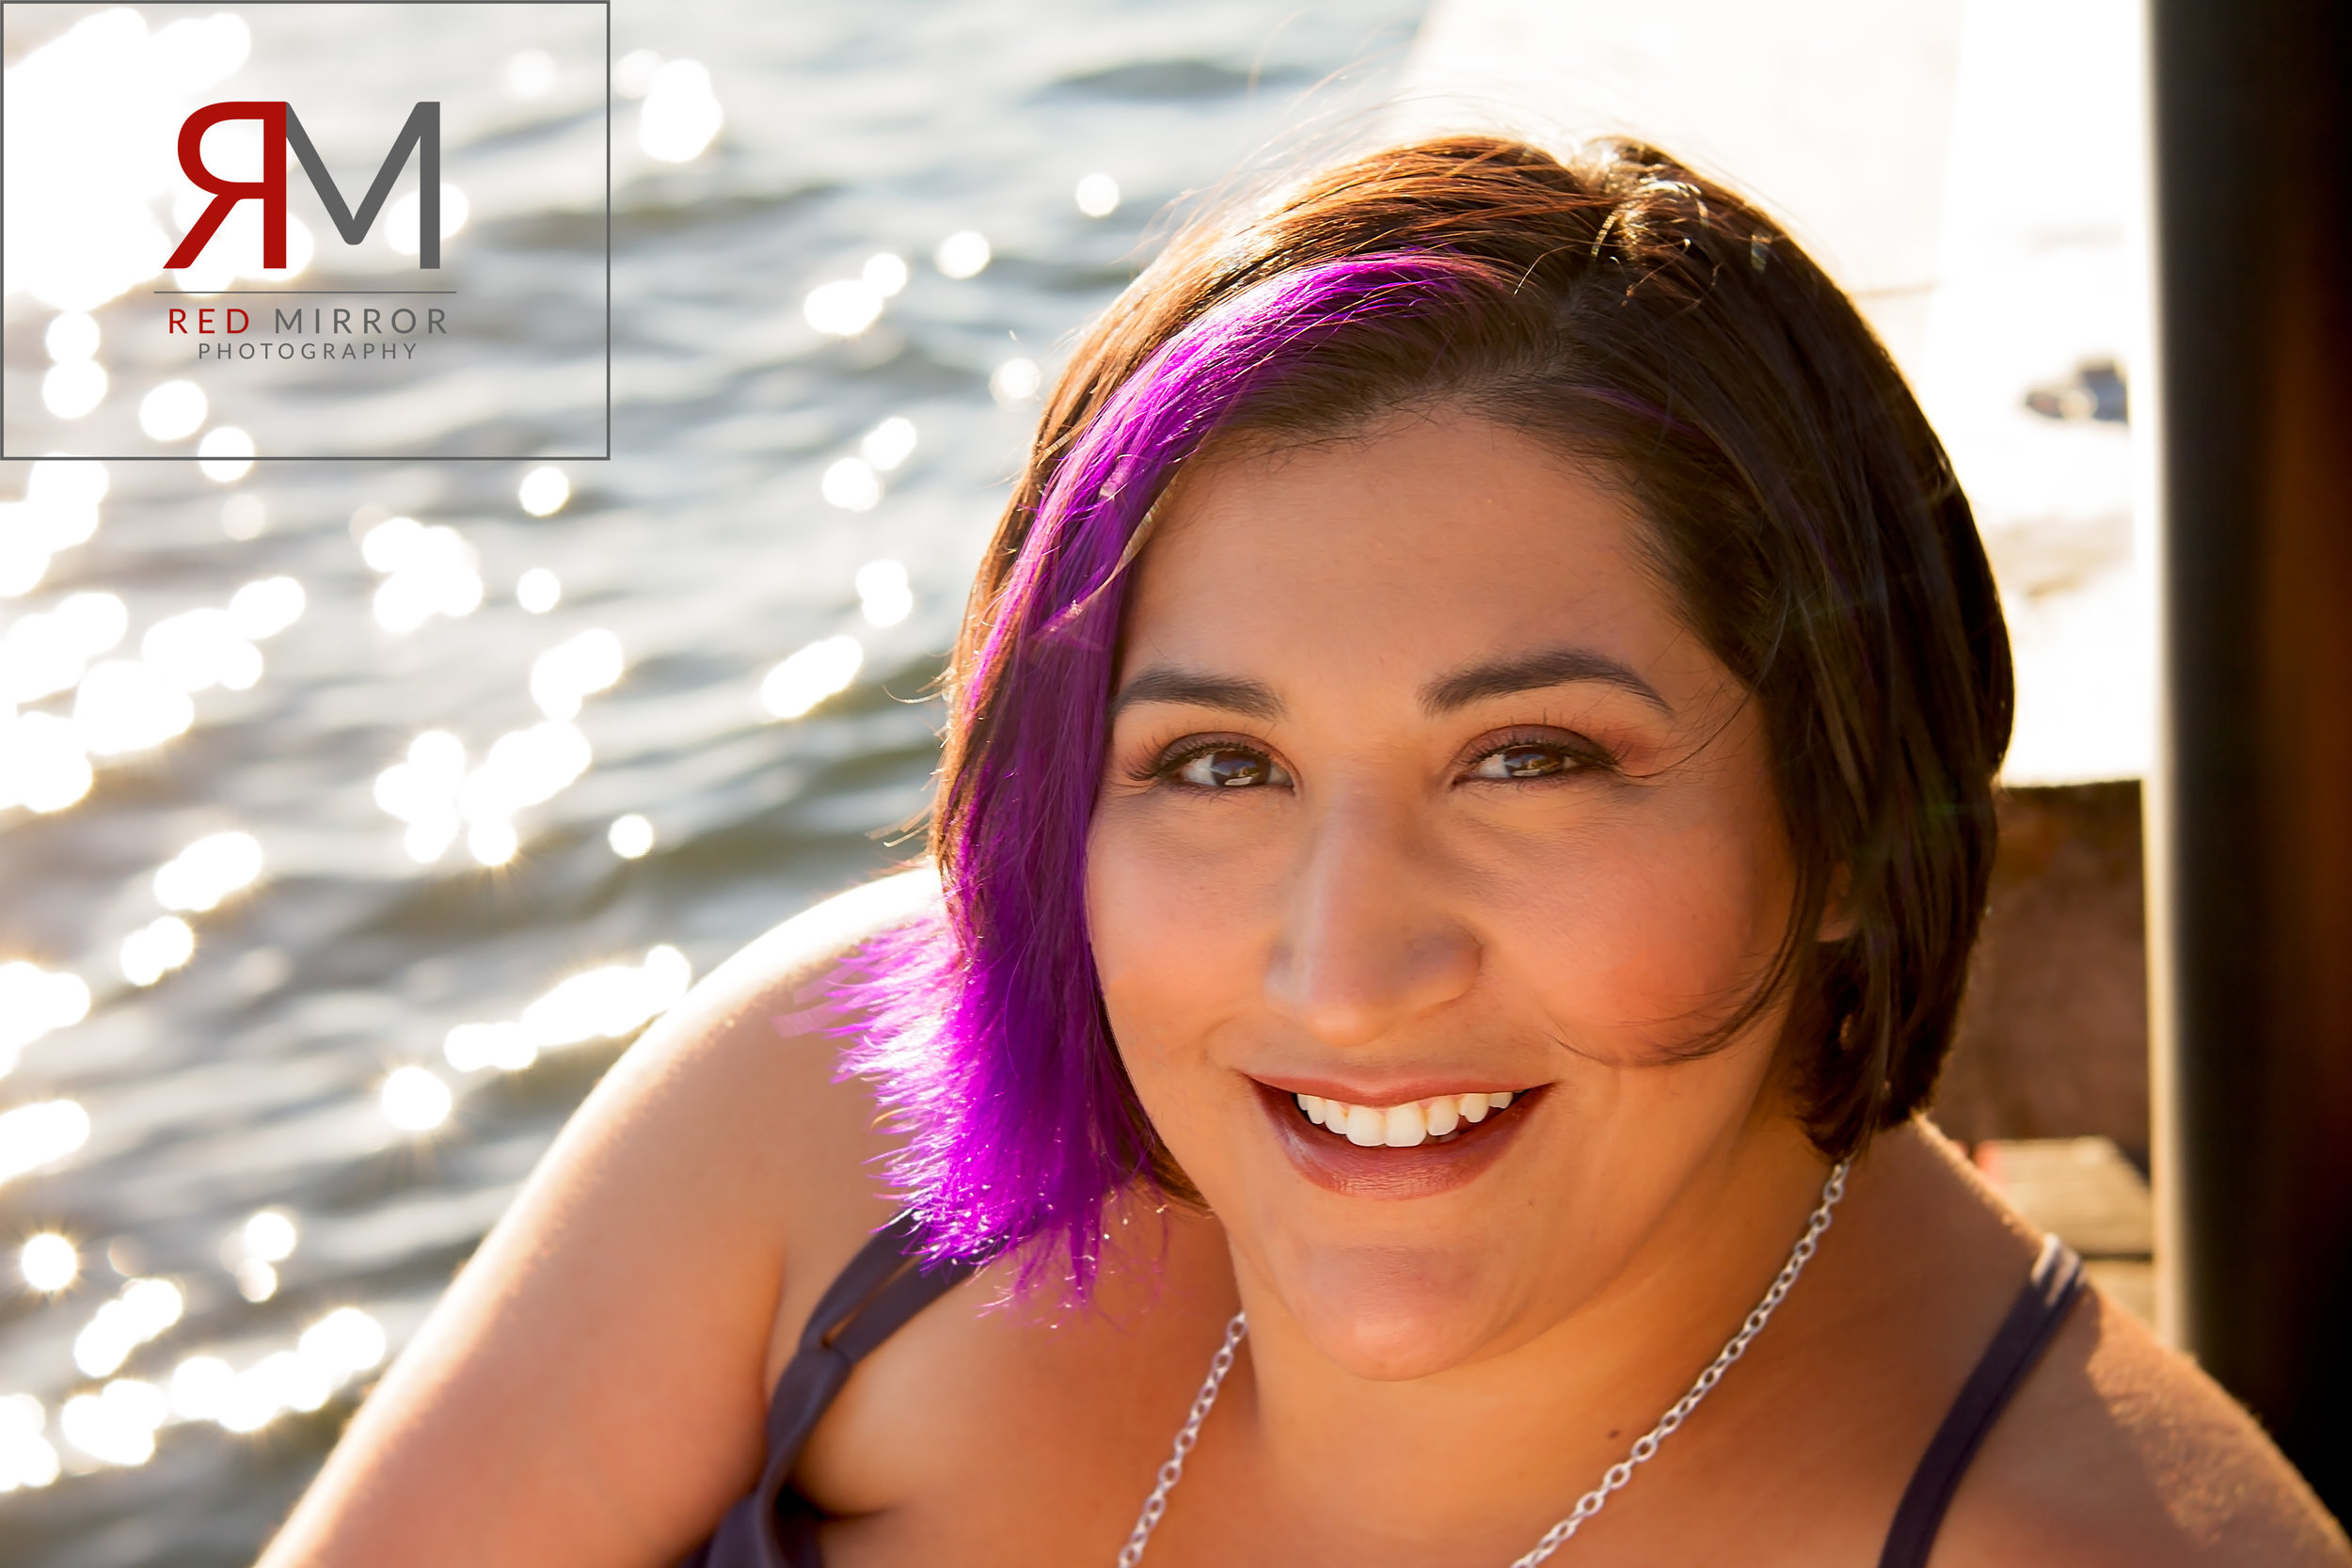 Woman with dark hair and a purple streak smiling in the sun